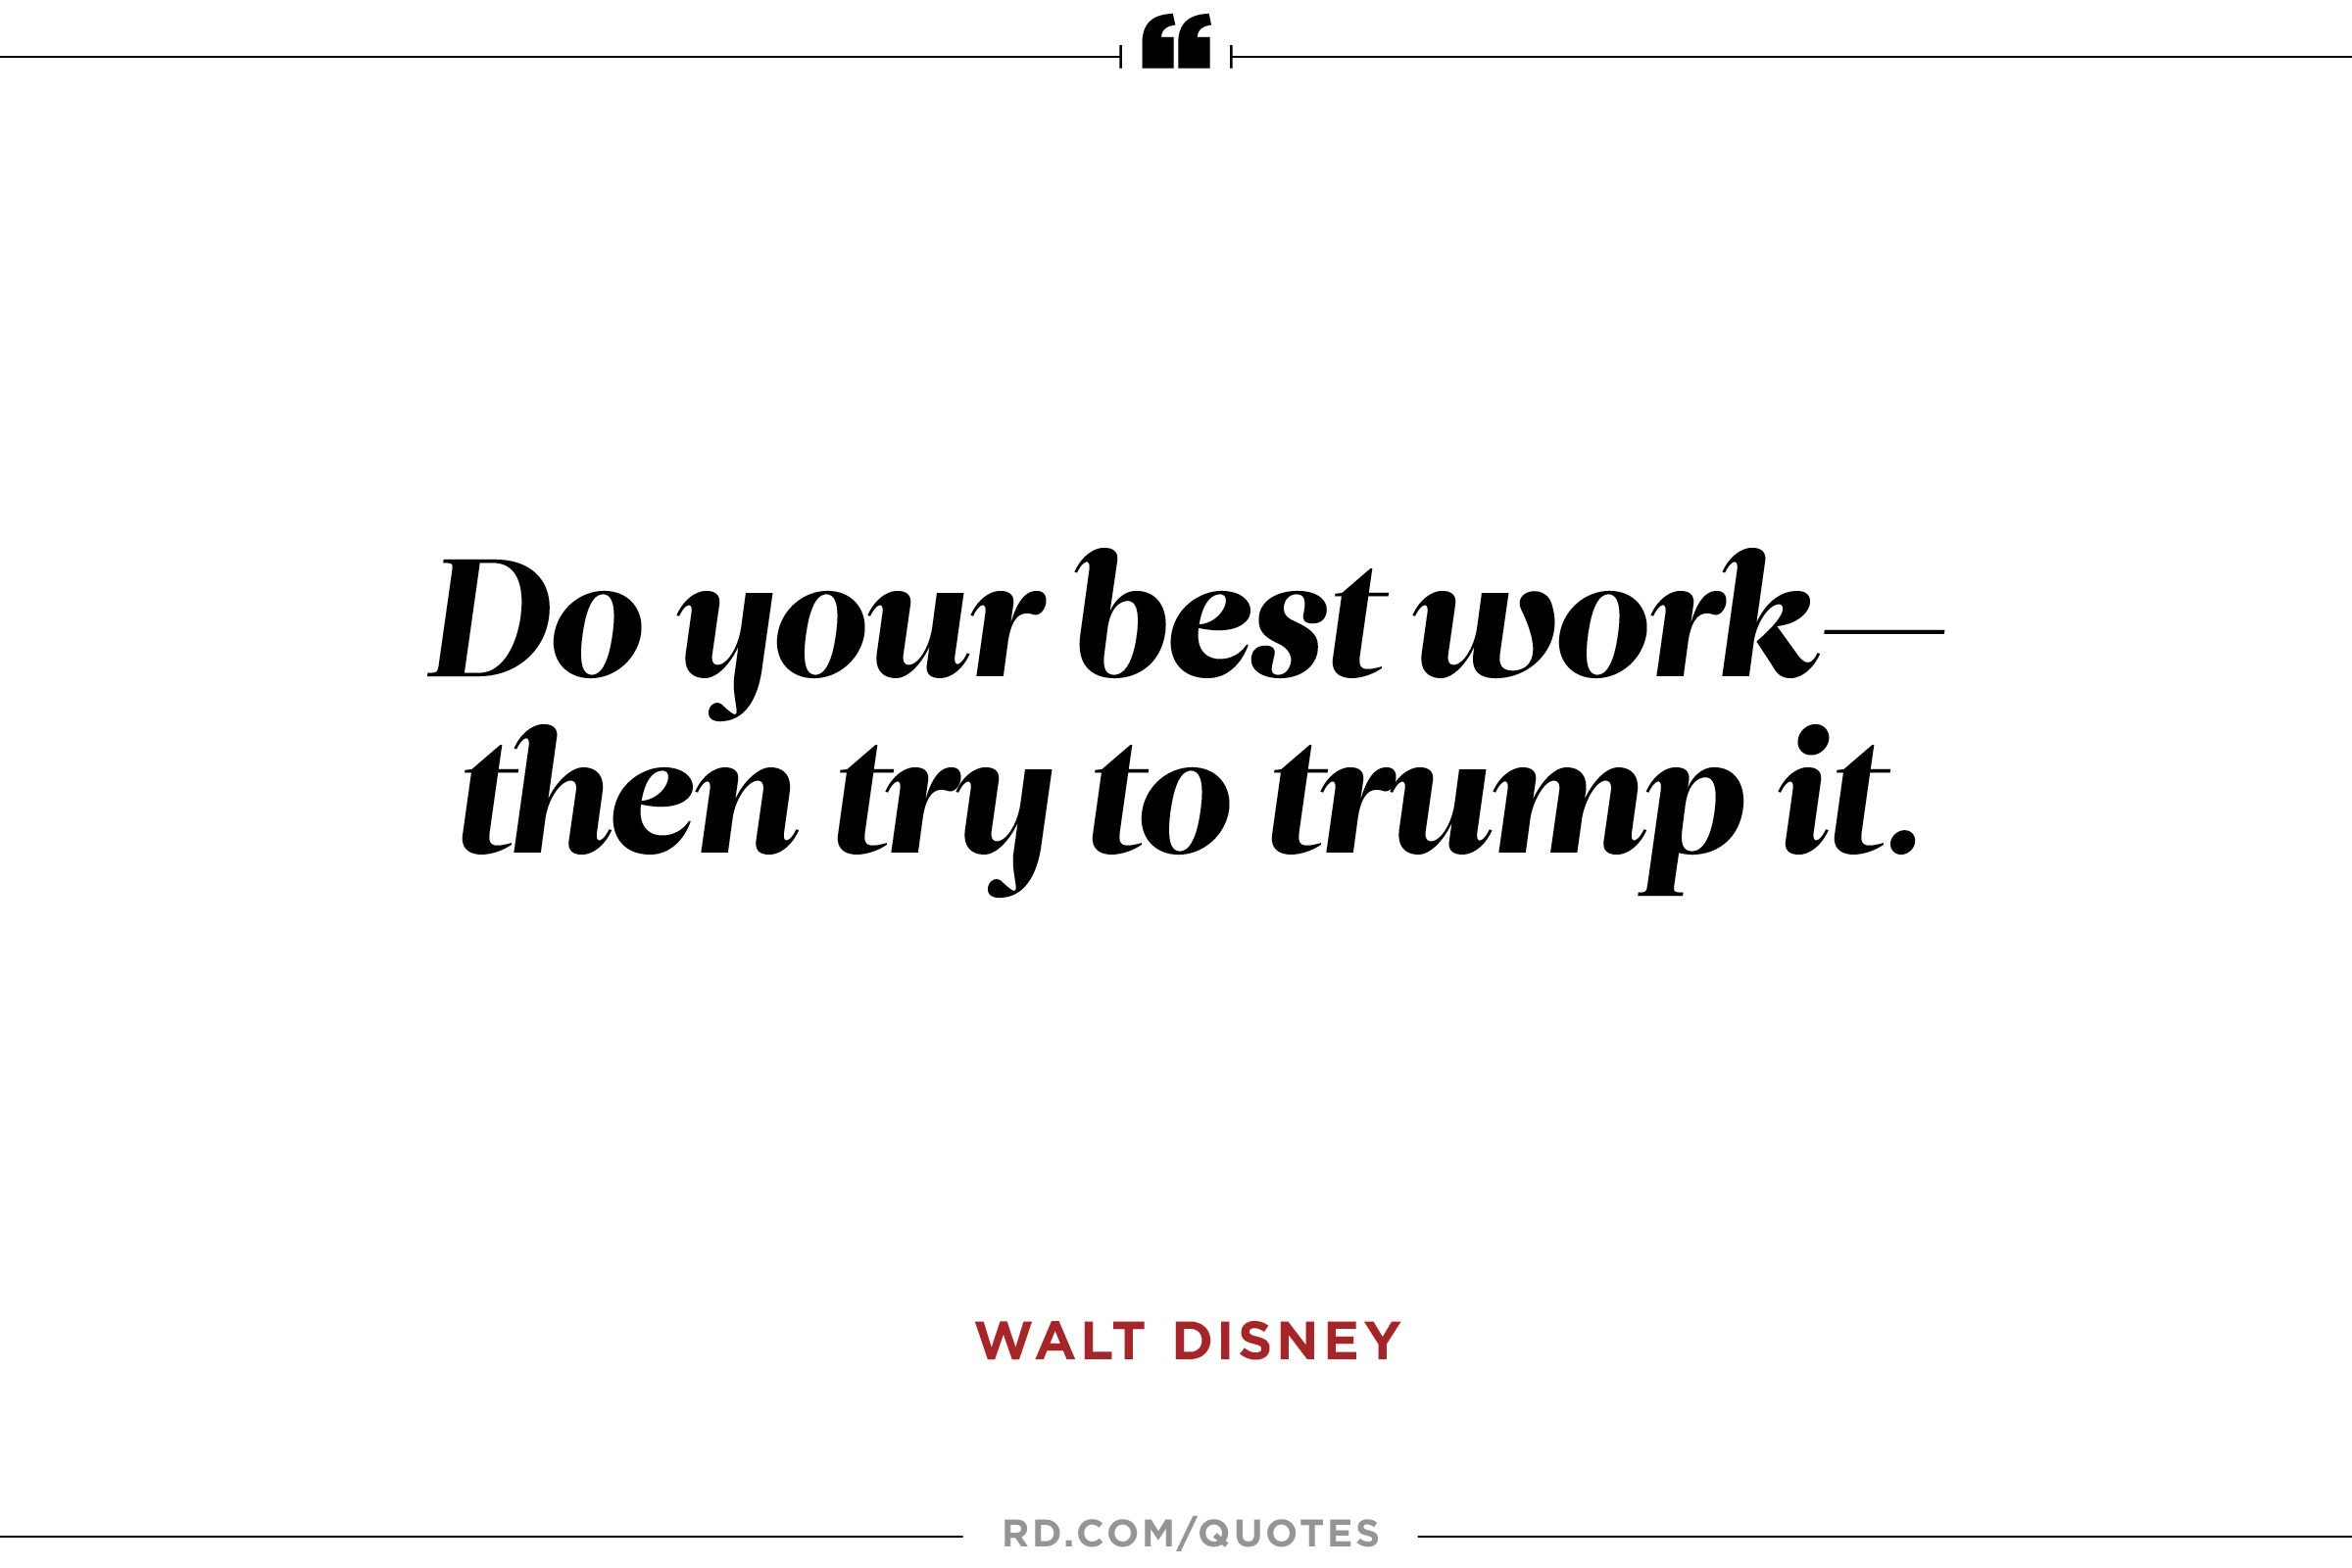 Walt Disney Quote Entrancing 11 Inspiring Walt Disney Quotes  Reader's Digest